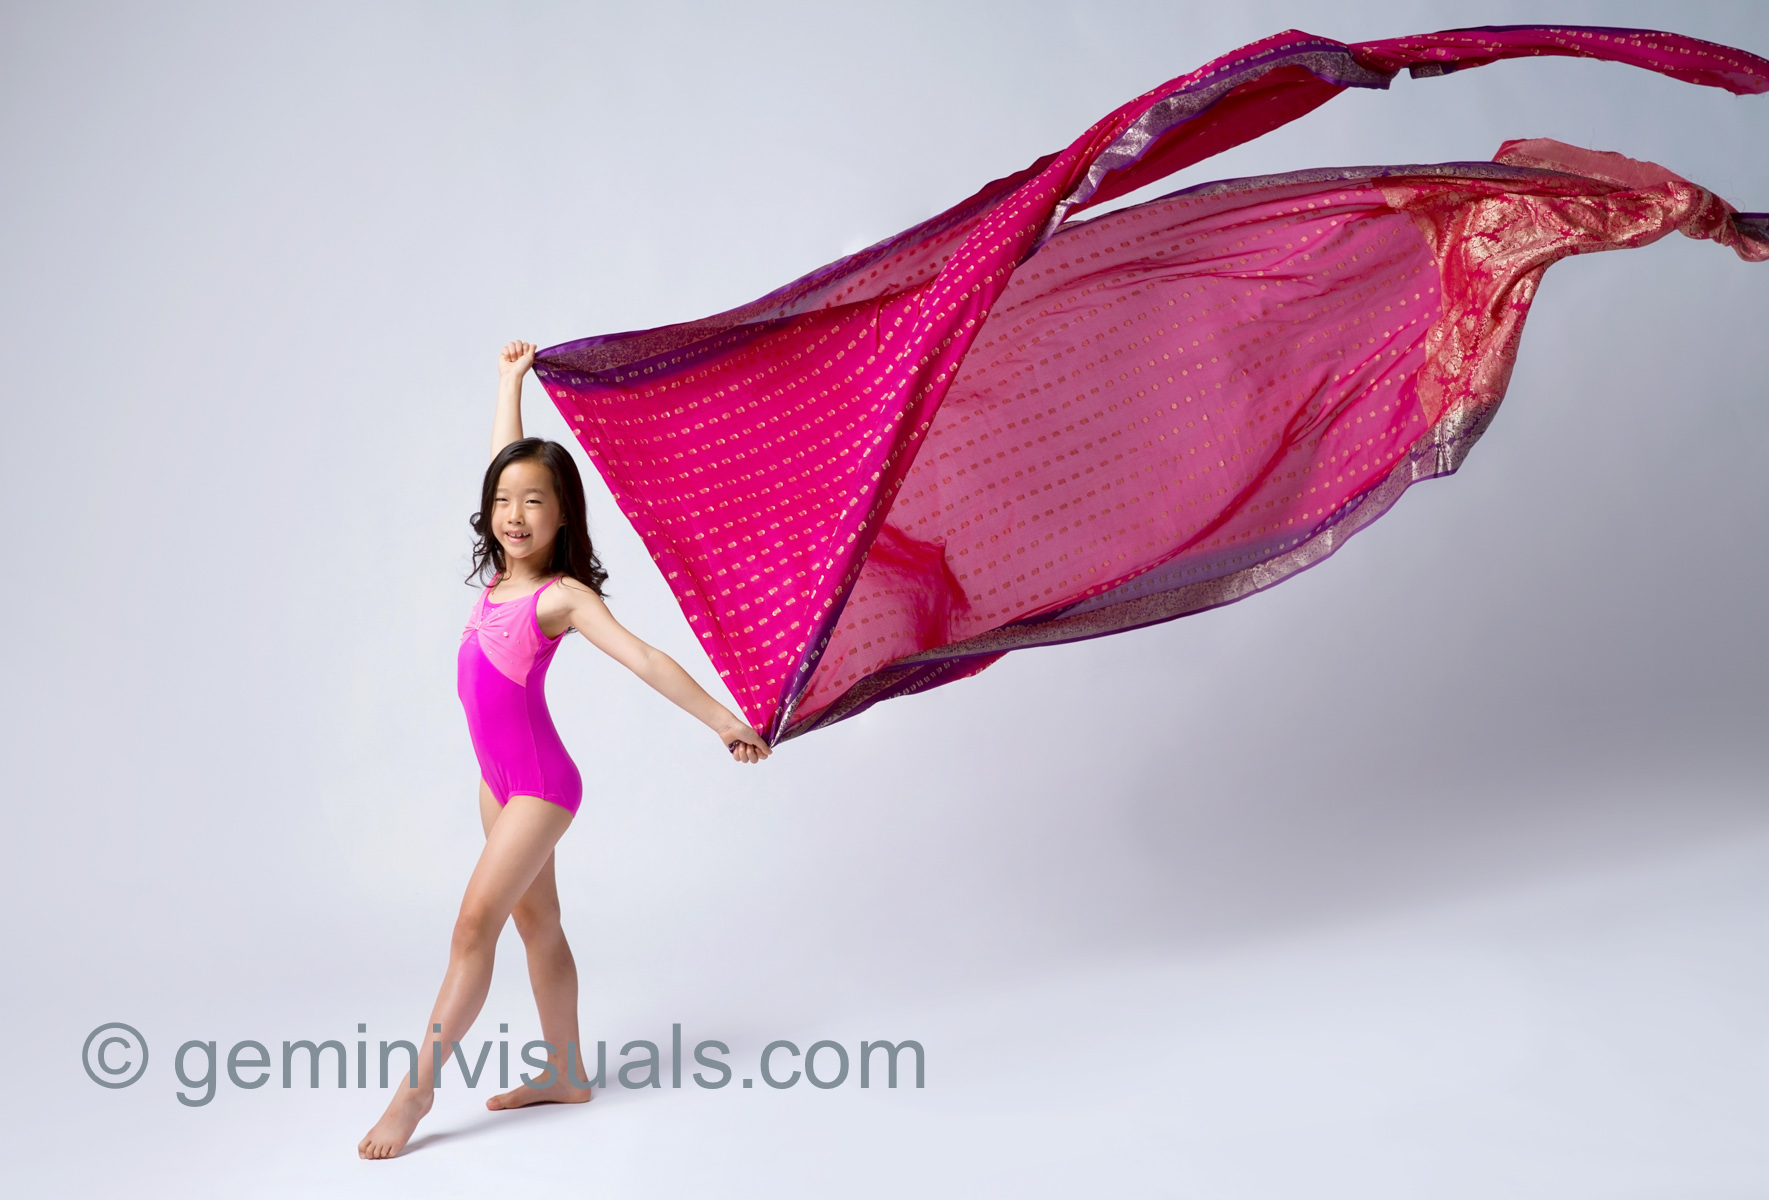 Dancer Photos, gemini visuals, mini sessions, dance school photos, creative dance sessions